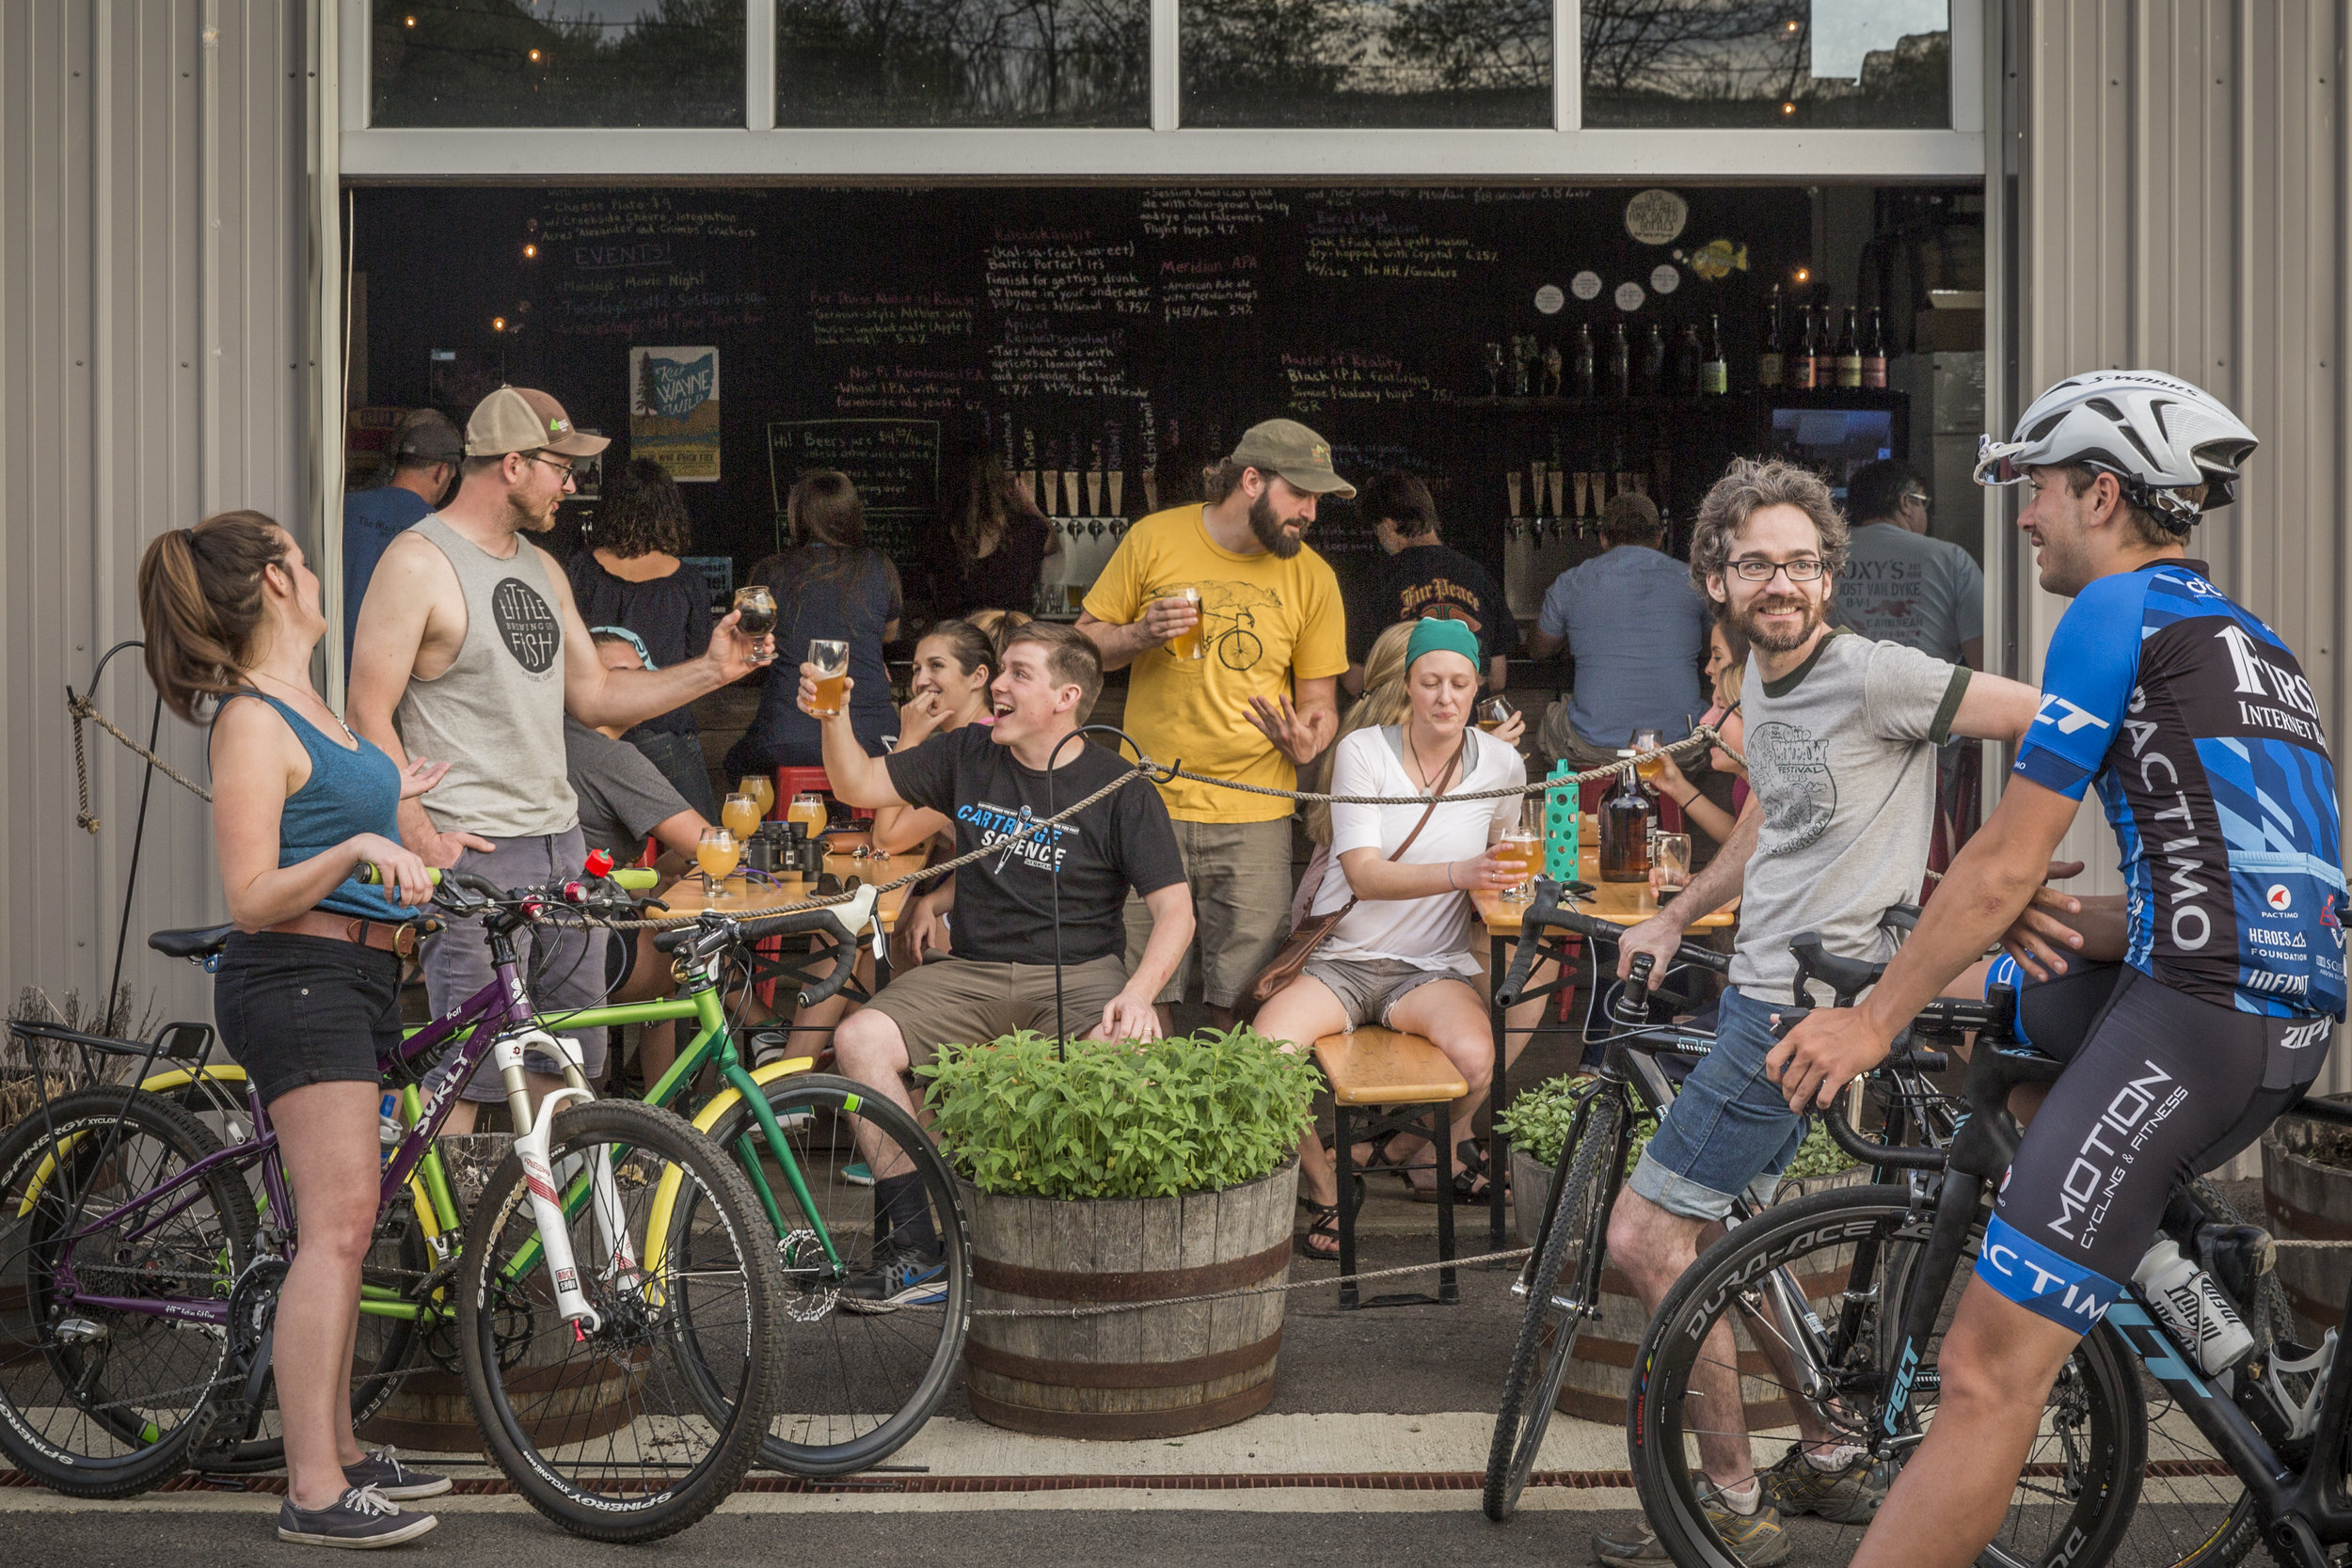 Little Fish Brewing Company in Athens, Ohio is a popular stop for cyclists after a day on the Hockhocking Adena Bikeway.